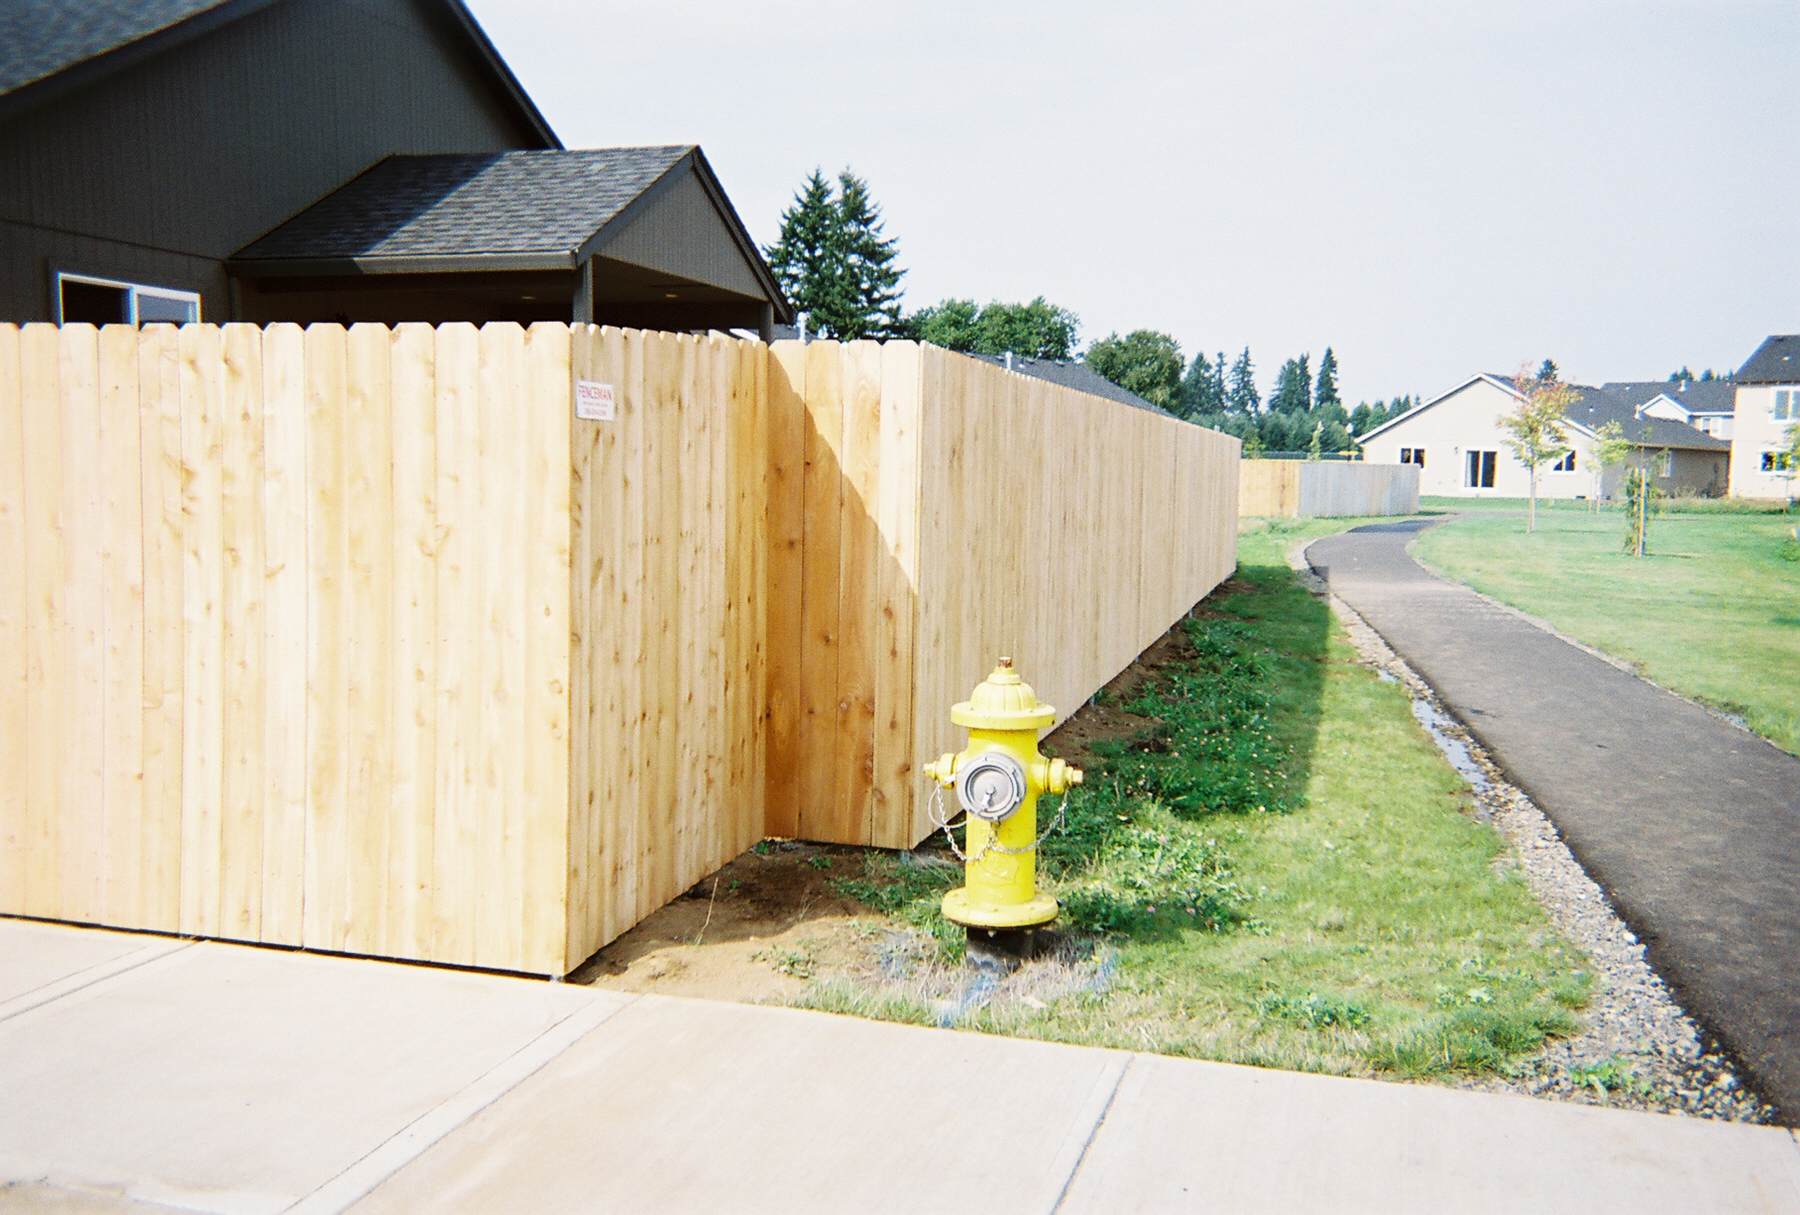 Dog Eared Solid Fence providing privacy and security. We offer fence solutions and make sure that your fence is compliant with property easements. Contact Vancouver Washington's Best Fence Builders. The Fenceman Fence Company installs wood, vinyl, chain link and ornamental iron fences. We also offer materials for the do it yourselfer.